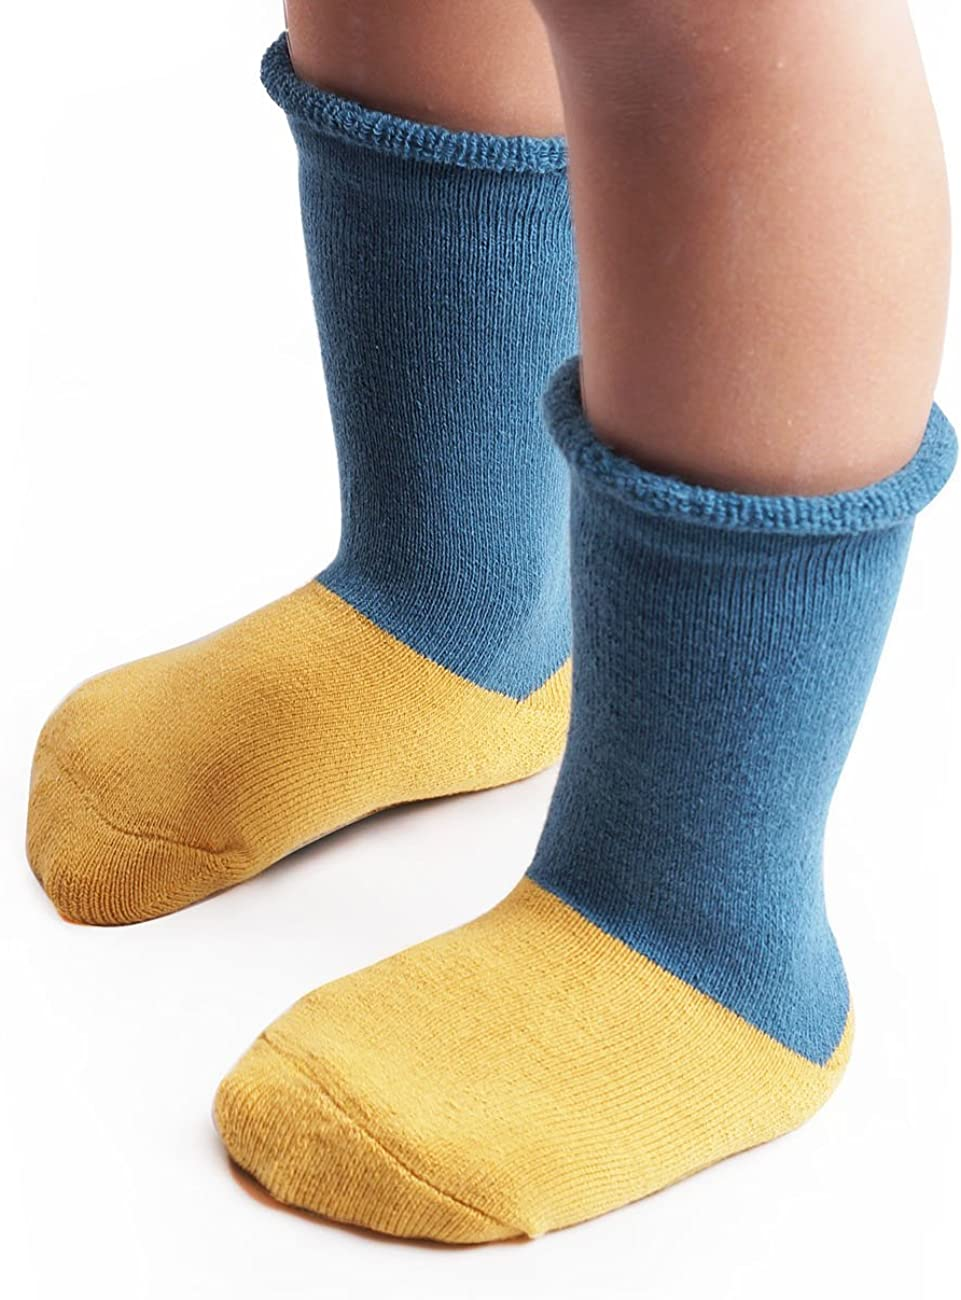 BabaMate Baby Infant Toddler Boys Girls Thick Warm Winter Socks Fuzzy Cotton Thermal Boot Socks for Cold Weather (3-Pack)